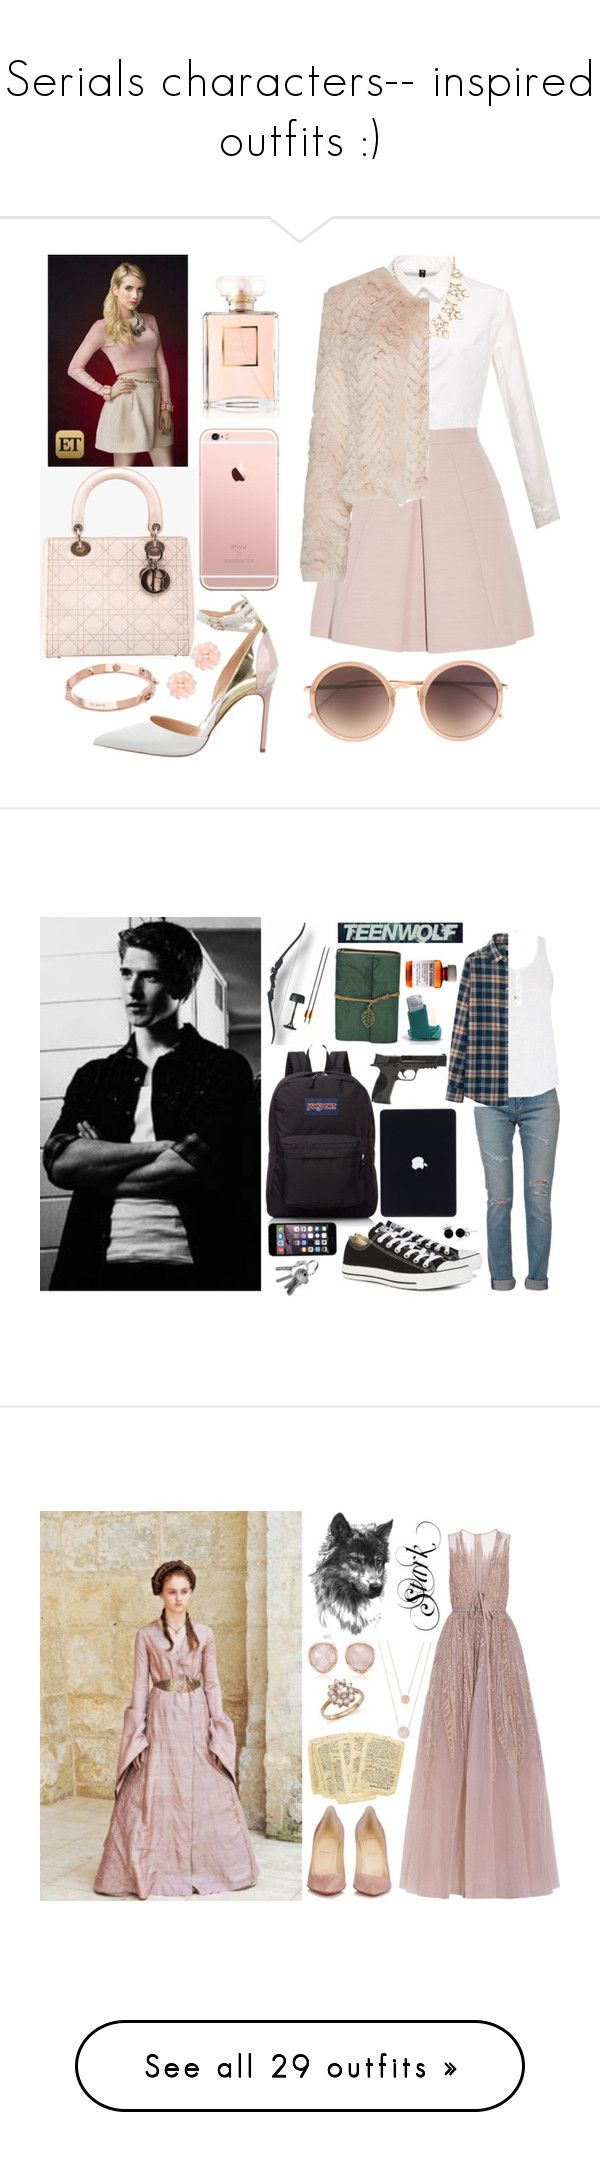 """""""Serials characters-- inspired outfits :)"""" by elisehart ❤ liked on Polyvore featuring Alexander McQueen, Manolo Blahnik, Christian Dior, Forever 21, Alice + Olivia, Dettagli, CC SKYE, Linda Farrow, Chanel and ScreamQueens"""